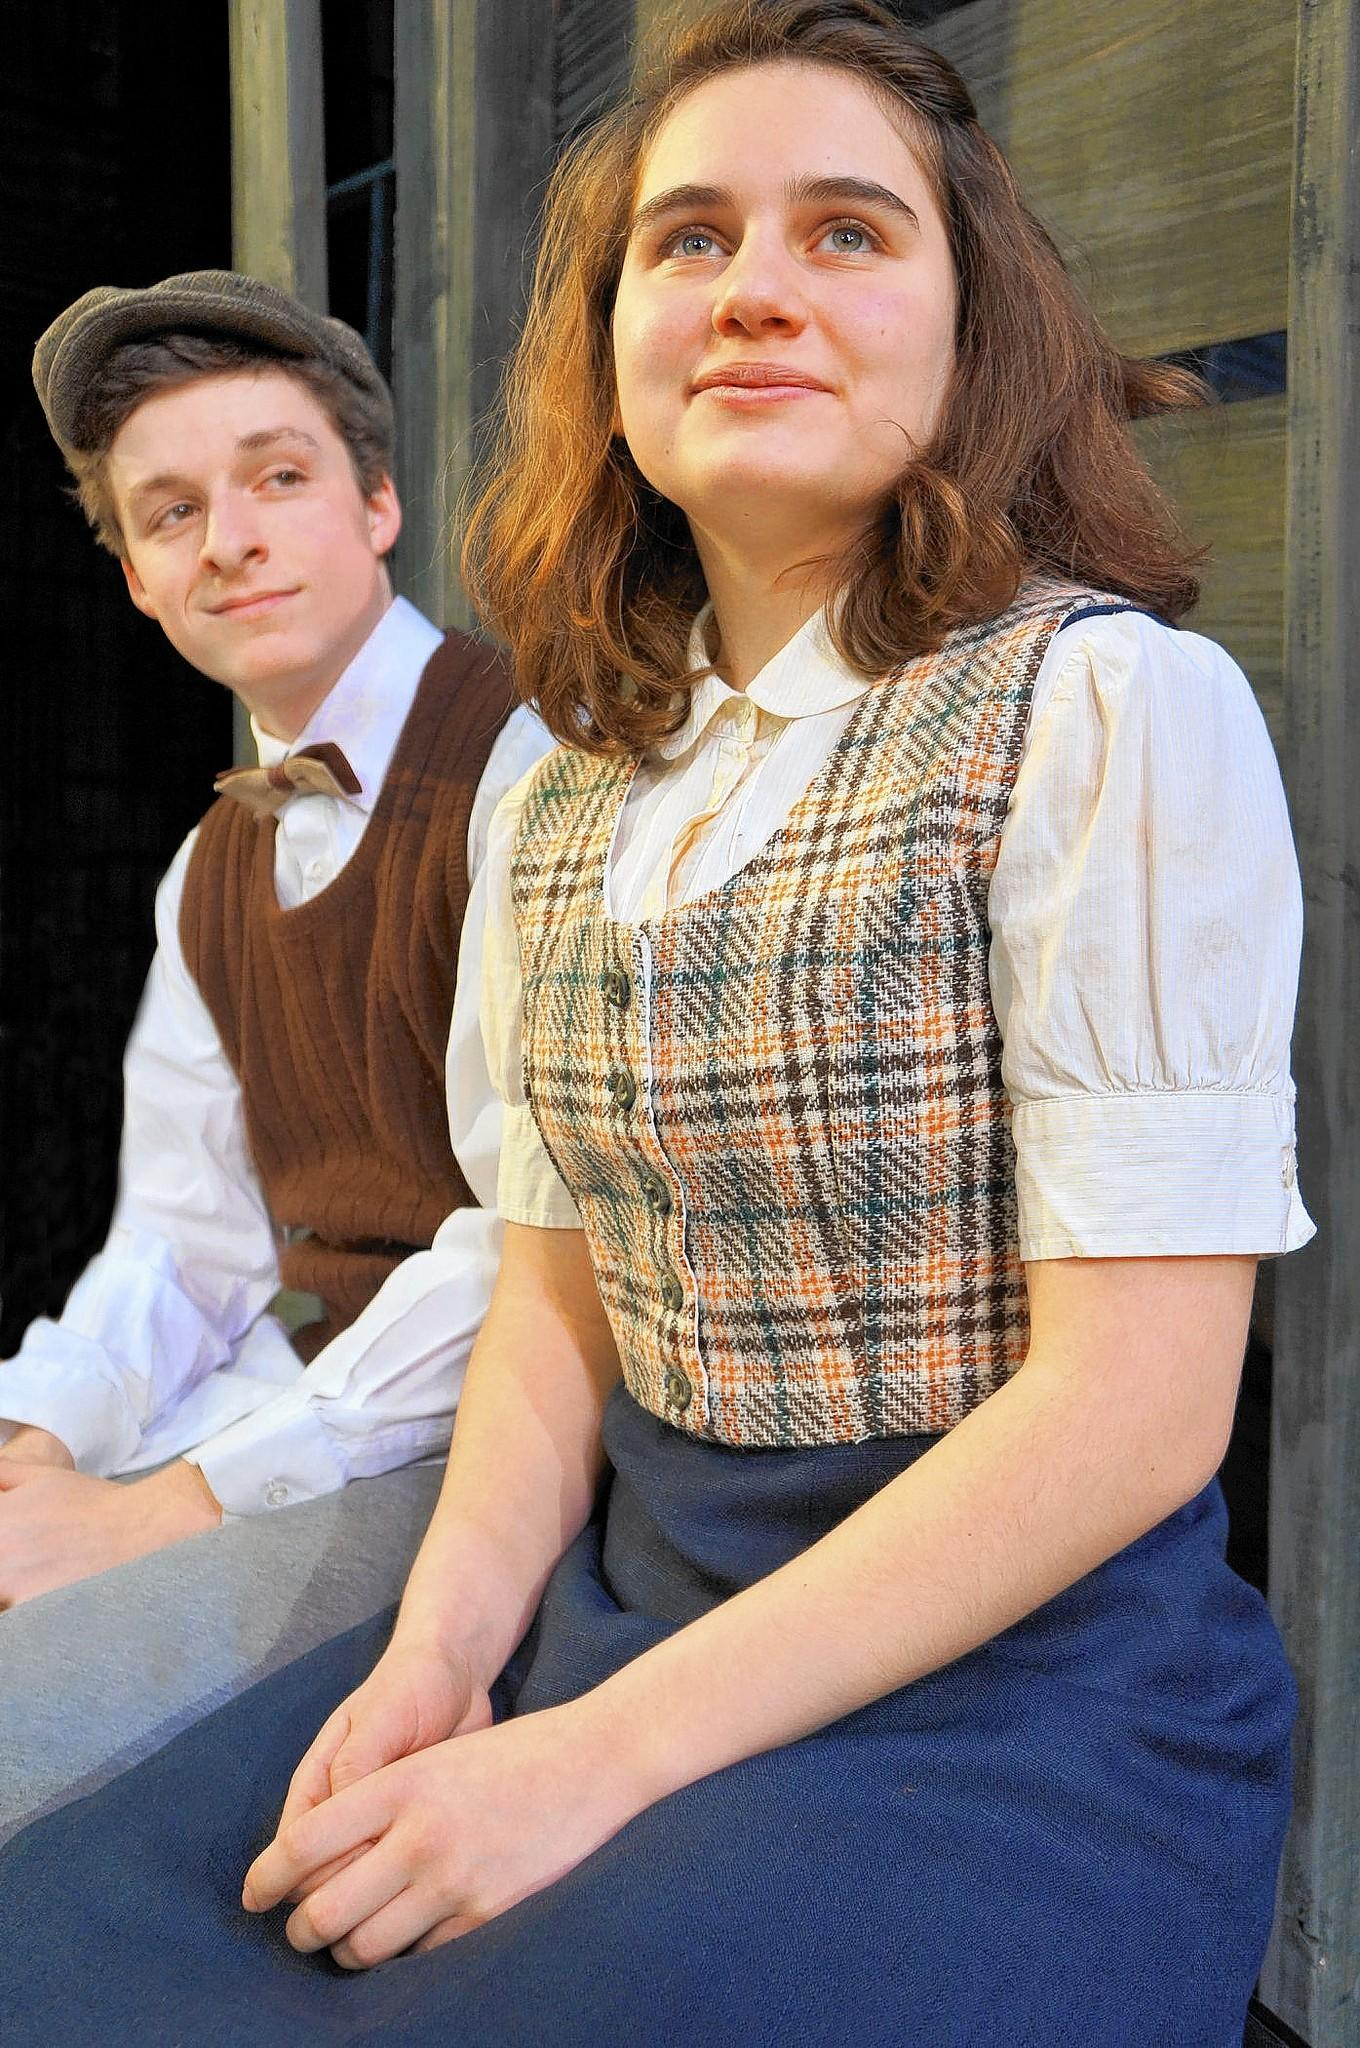 Anne Frank (Emma Santschi) shares her innermost dreams with fellow attic occupant, Peter (Louis Jannuzzi III) in the Act 1 production of 'The Diary of Anne Frank,' Feb. 19-March 2 at the Labuda Center at DeSales University.